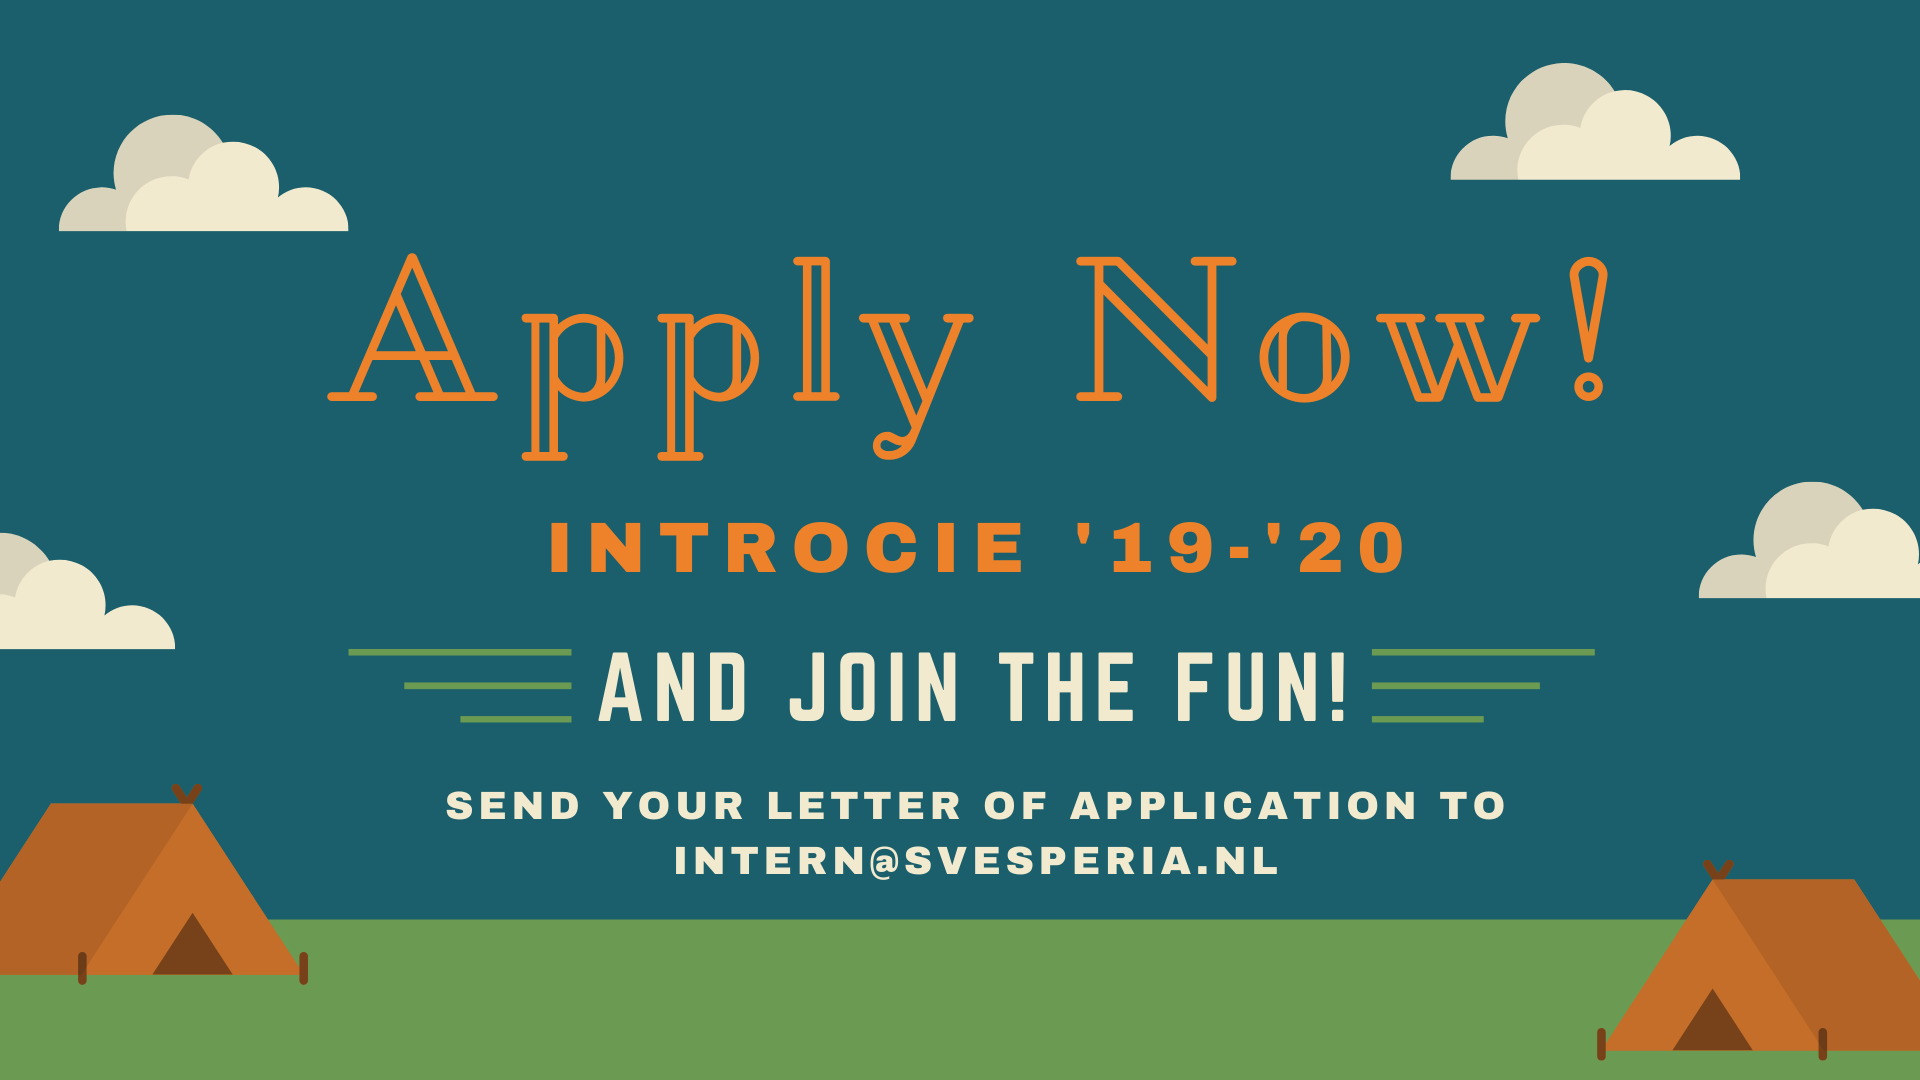 Apply for the Introcie!